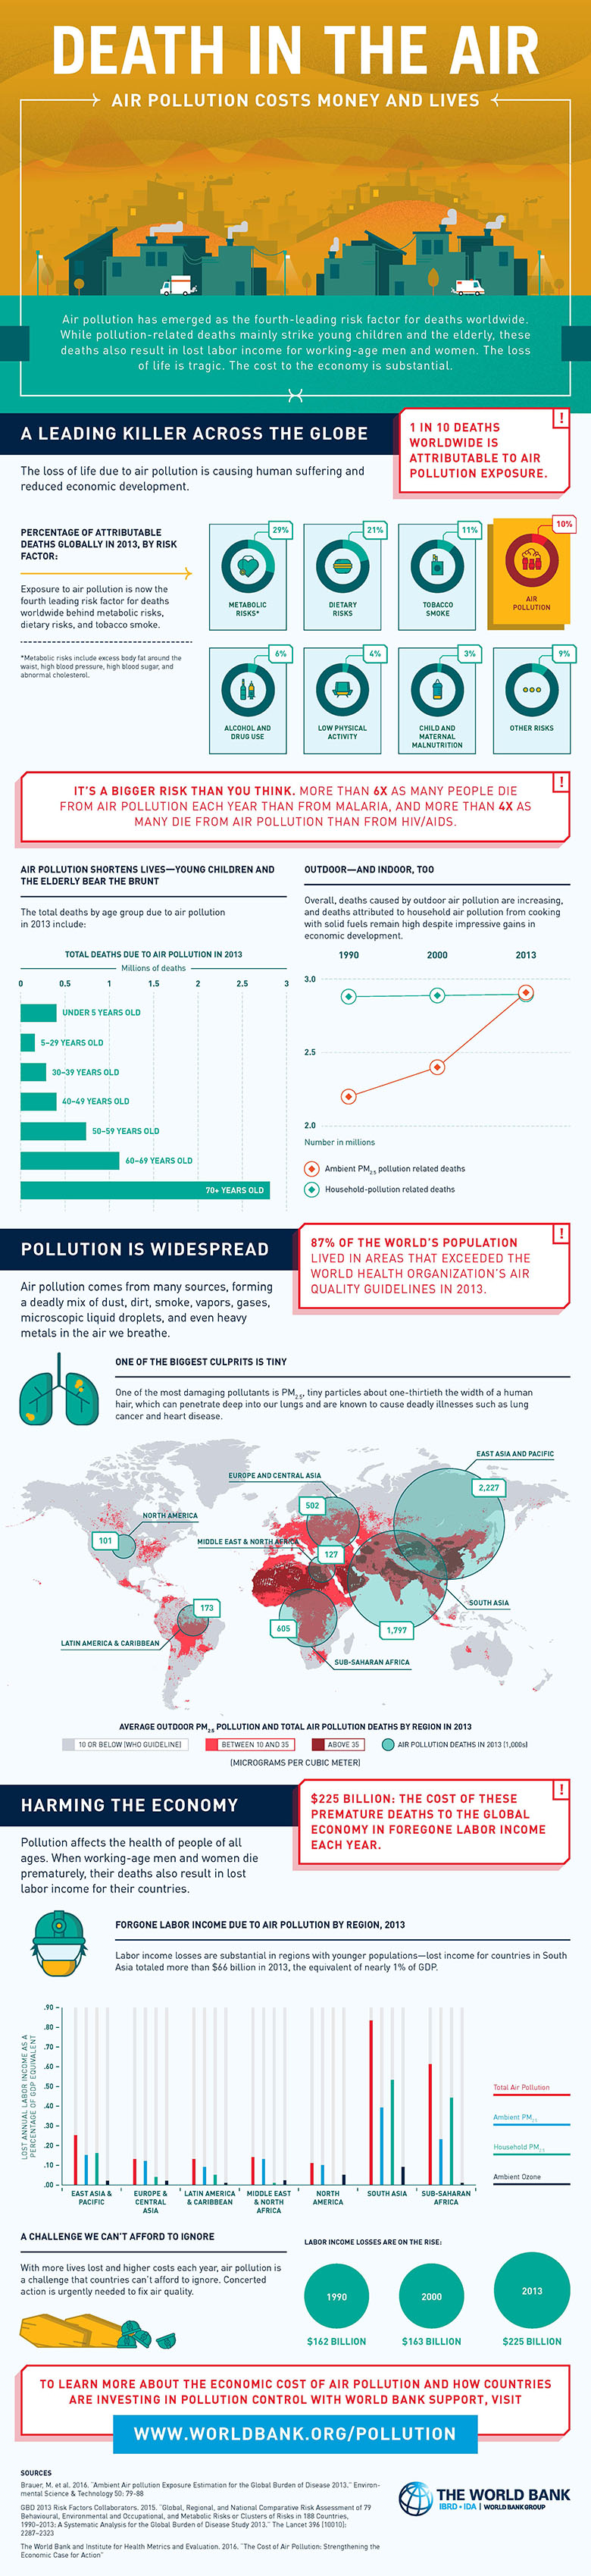 Air Pollution: The Leading Killer Across Our Planet - Infographic